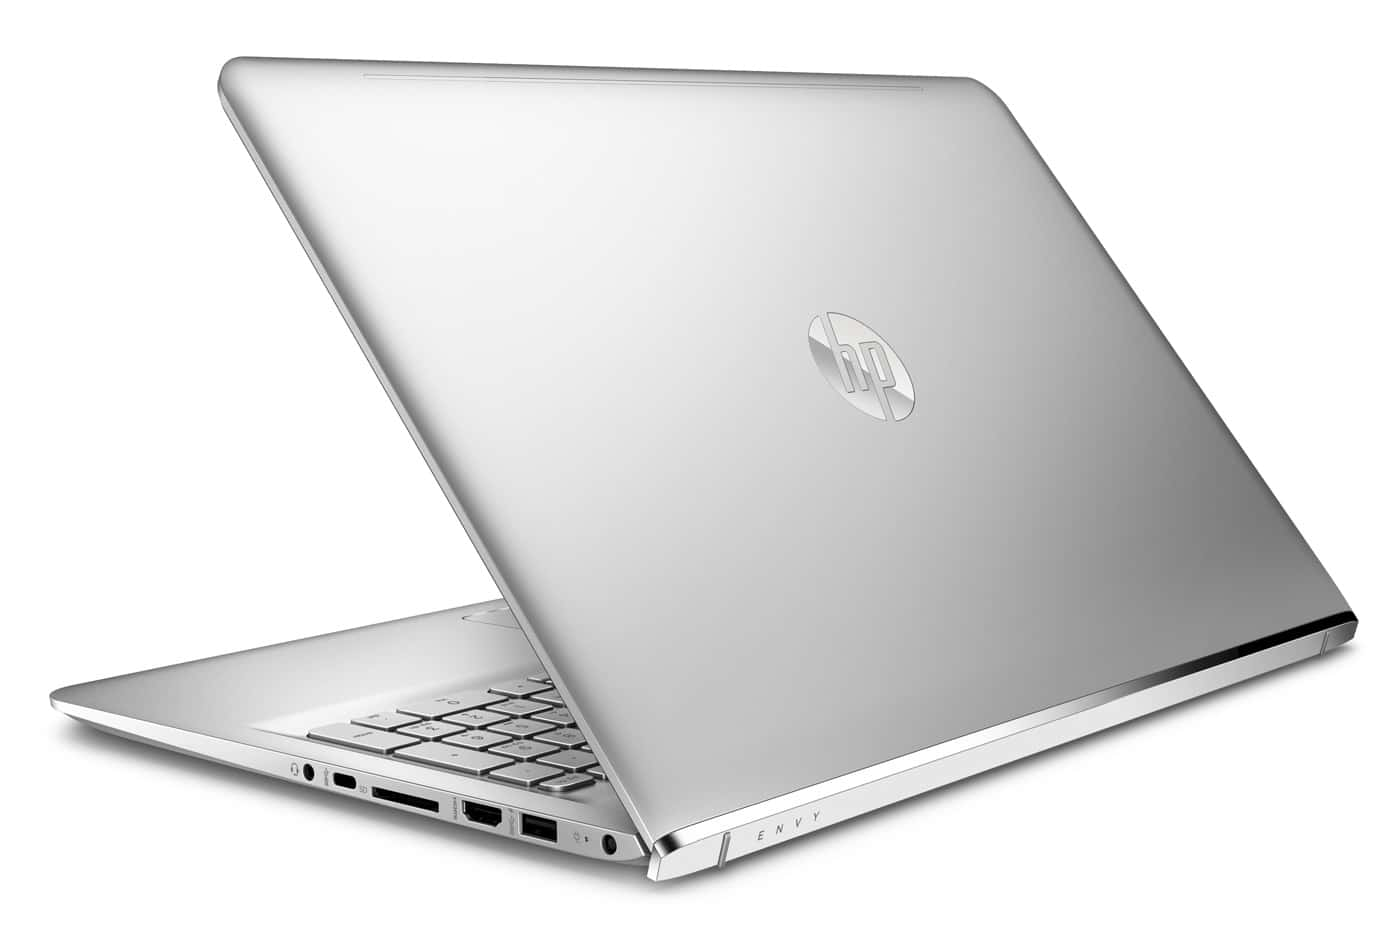 HP Envy 15-as109nf, Ultrabook 15 pouces 4K IPS Kaby Iris SSD promo 1104€